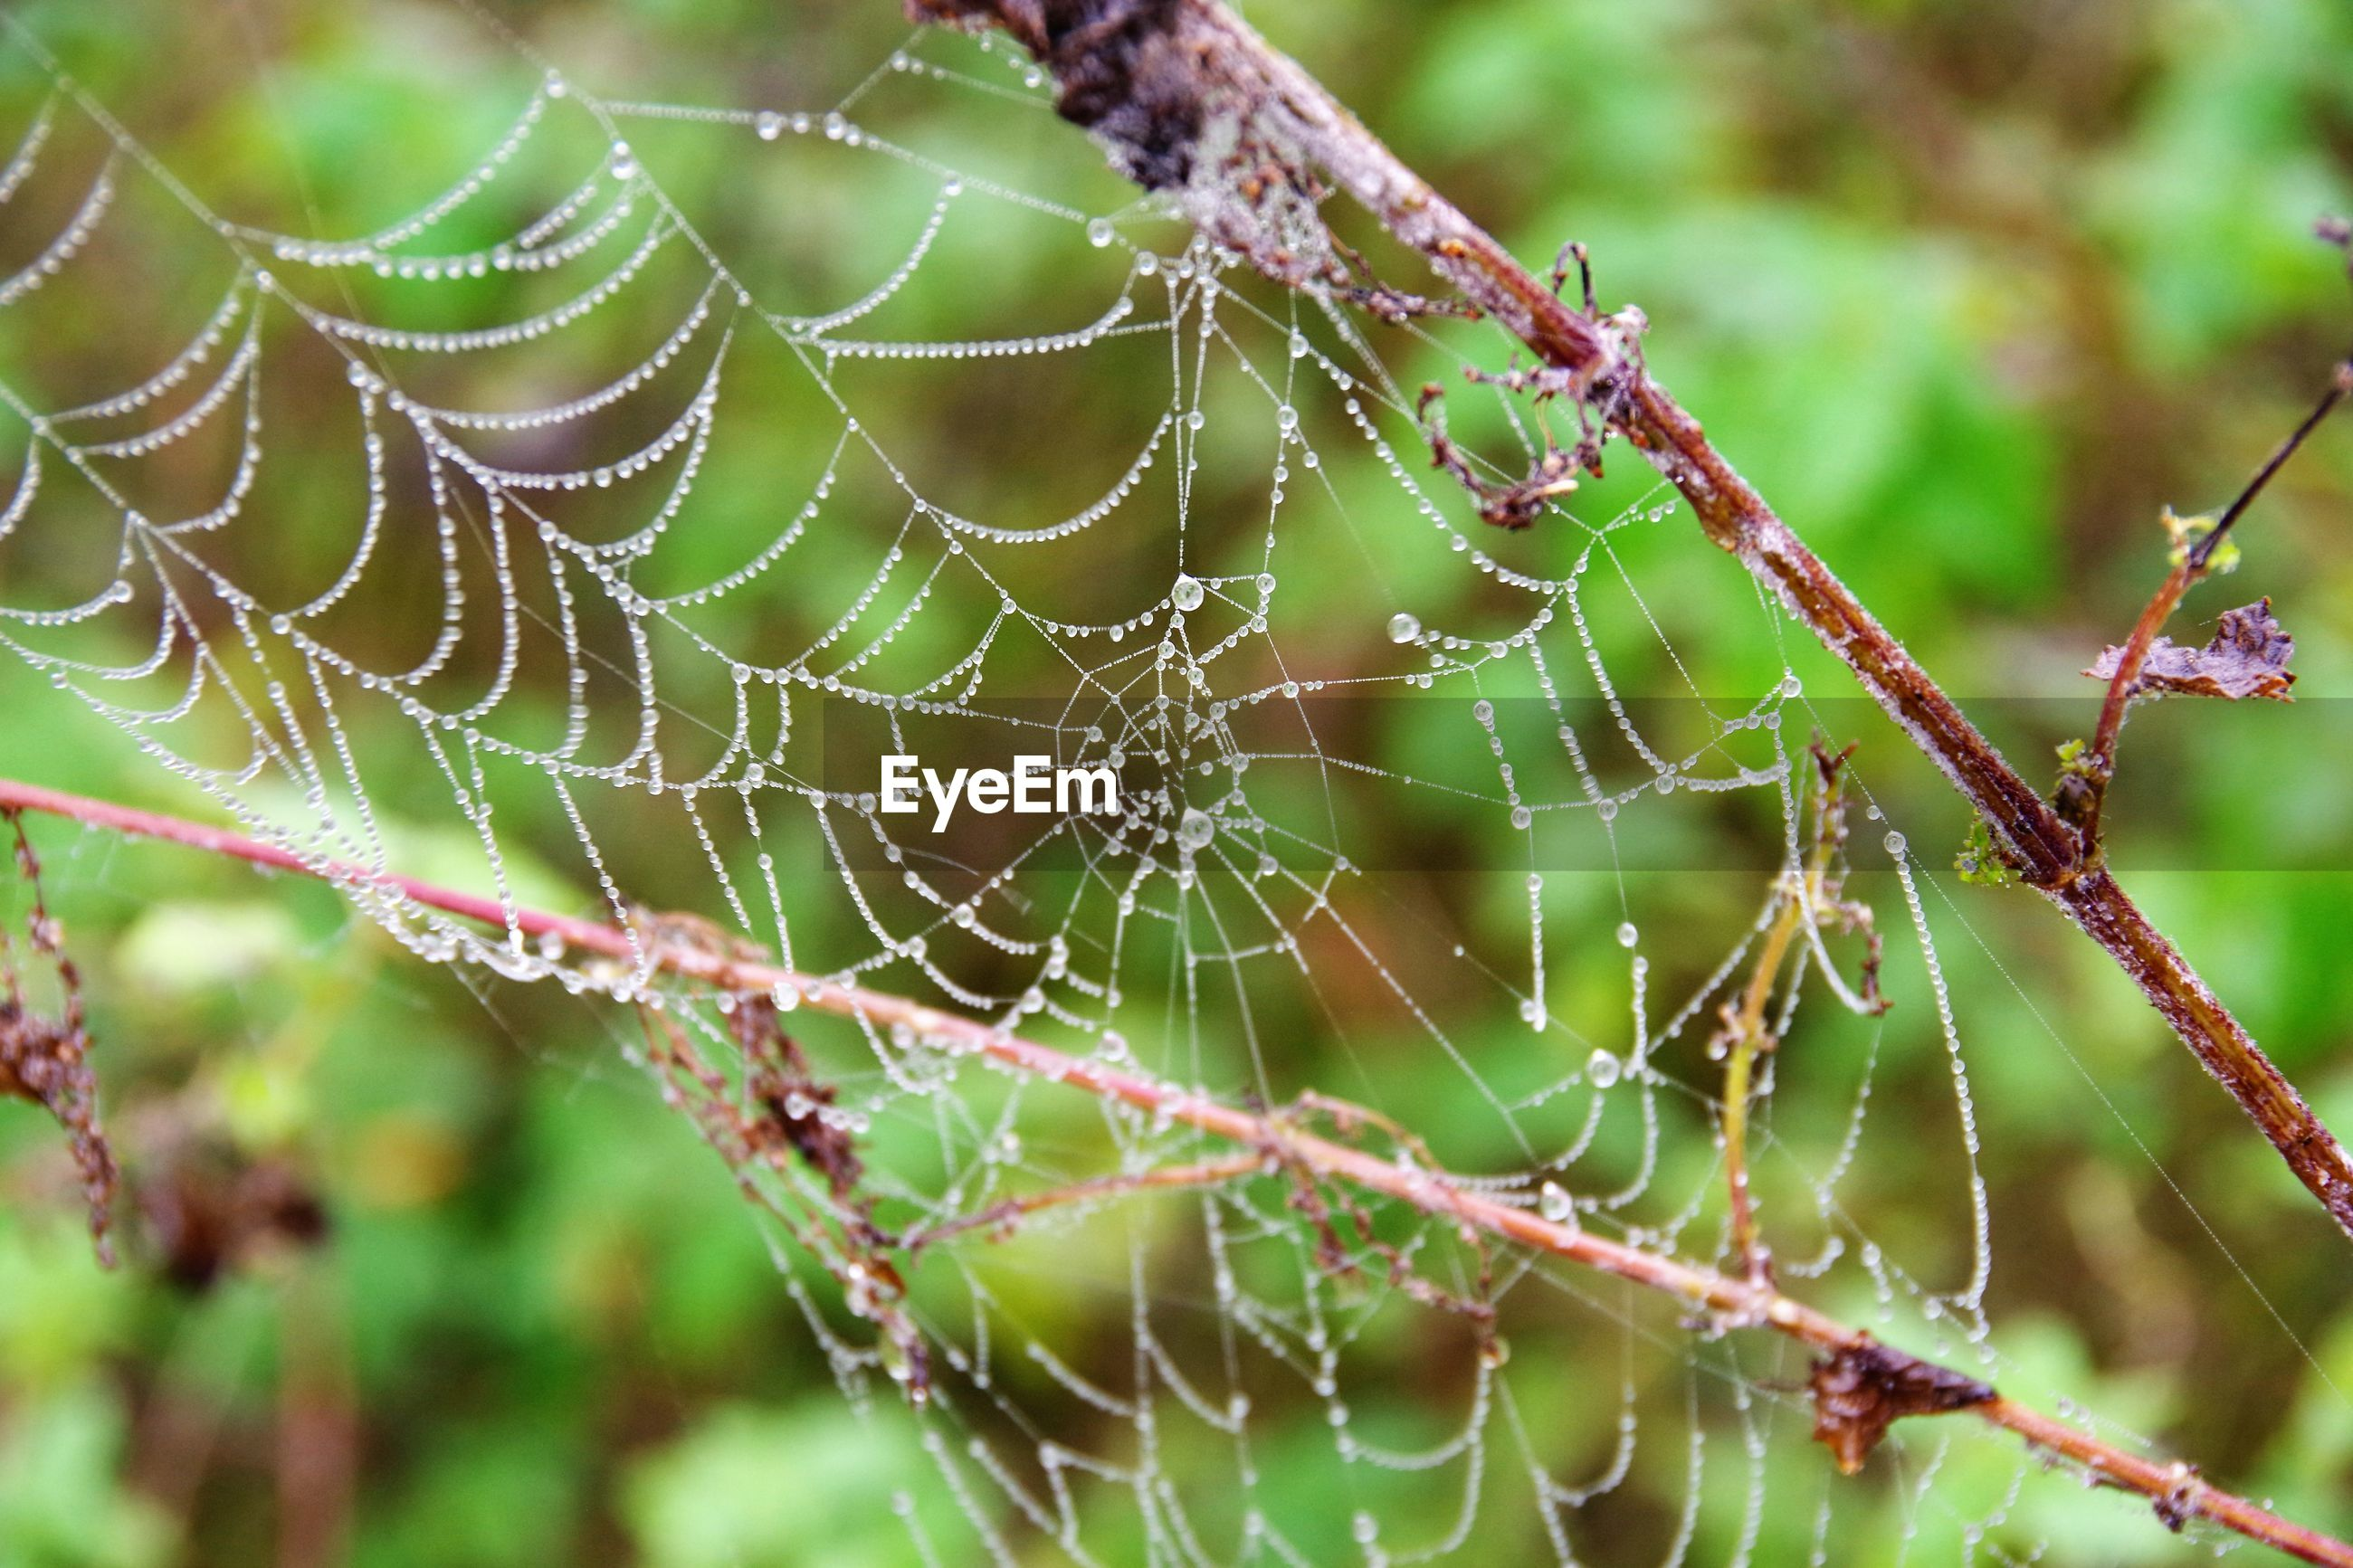 CLOSE-UP OF SPIDER AND WEB ON LEAF